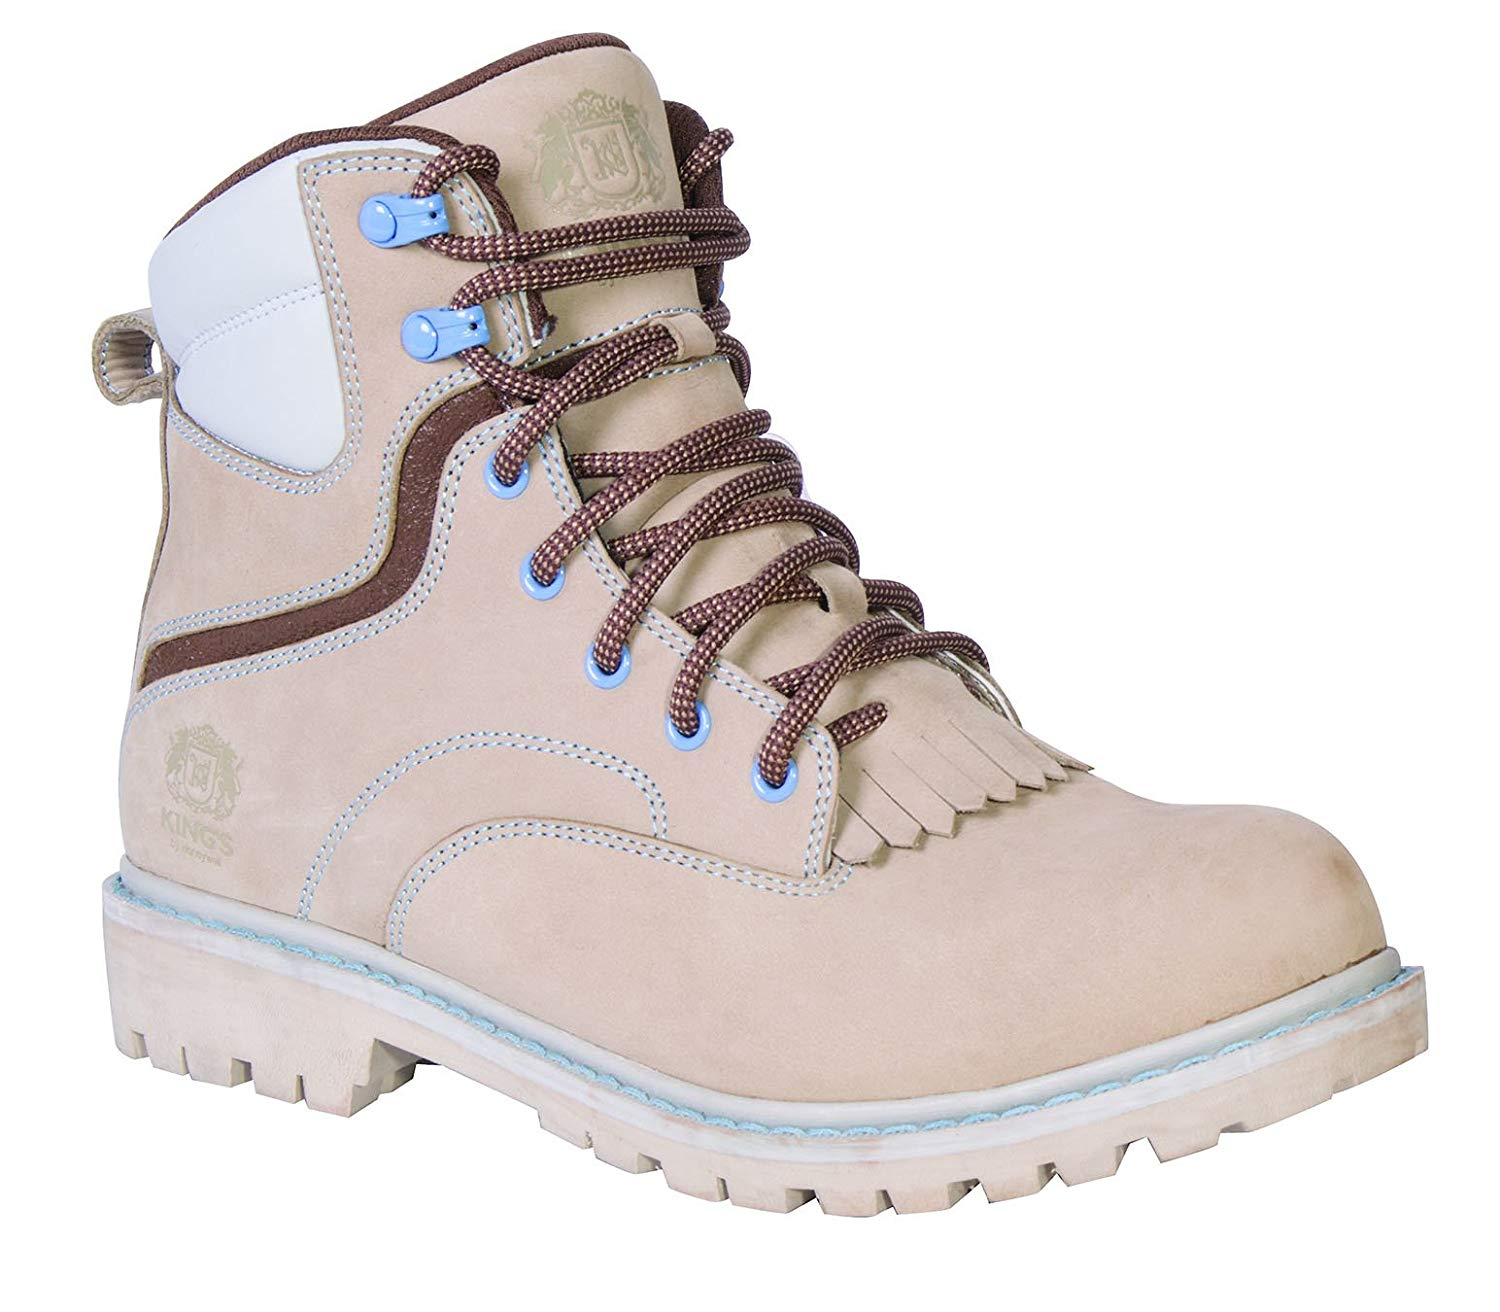 Kings Leather Steel toe Womens Work Boot with Good year Welt